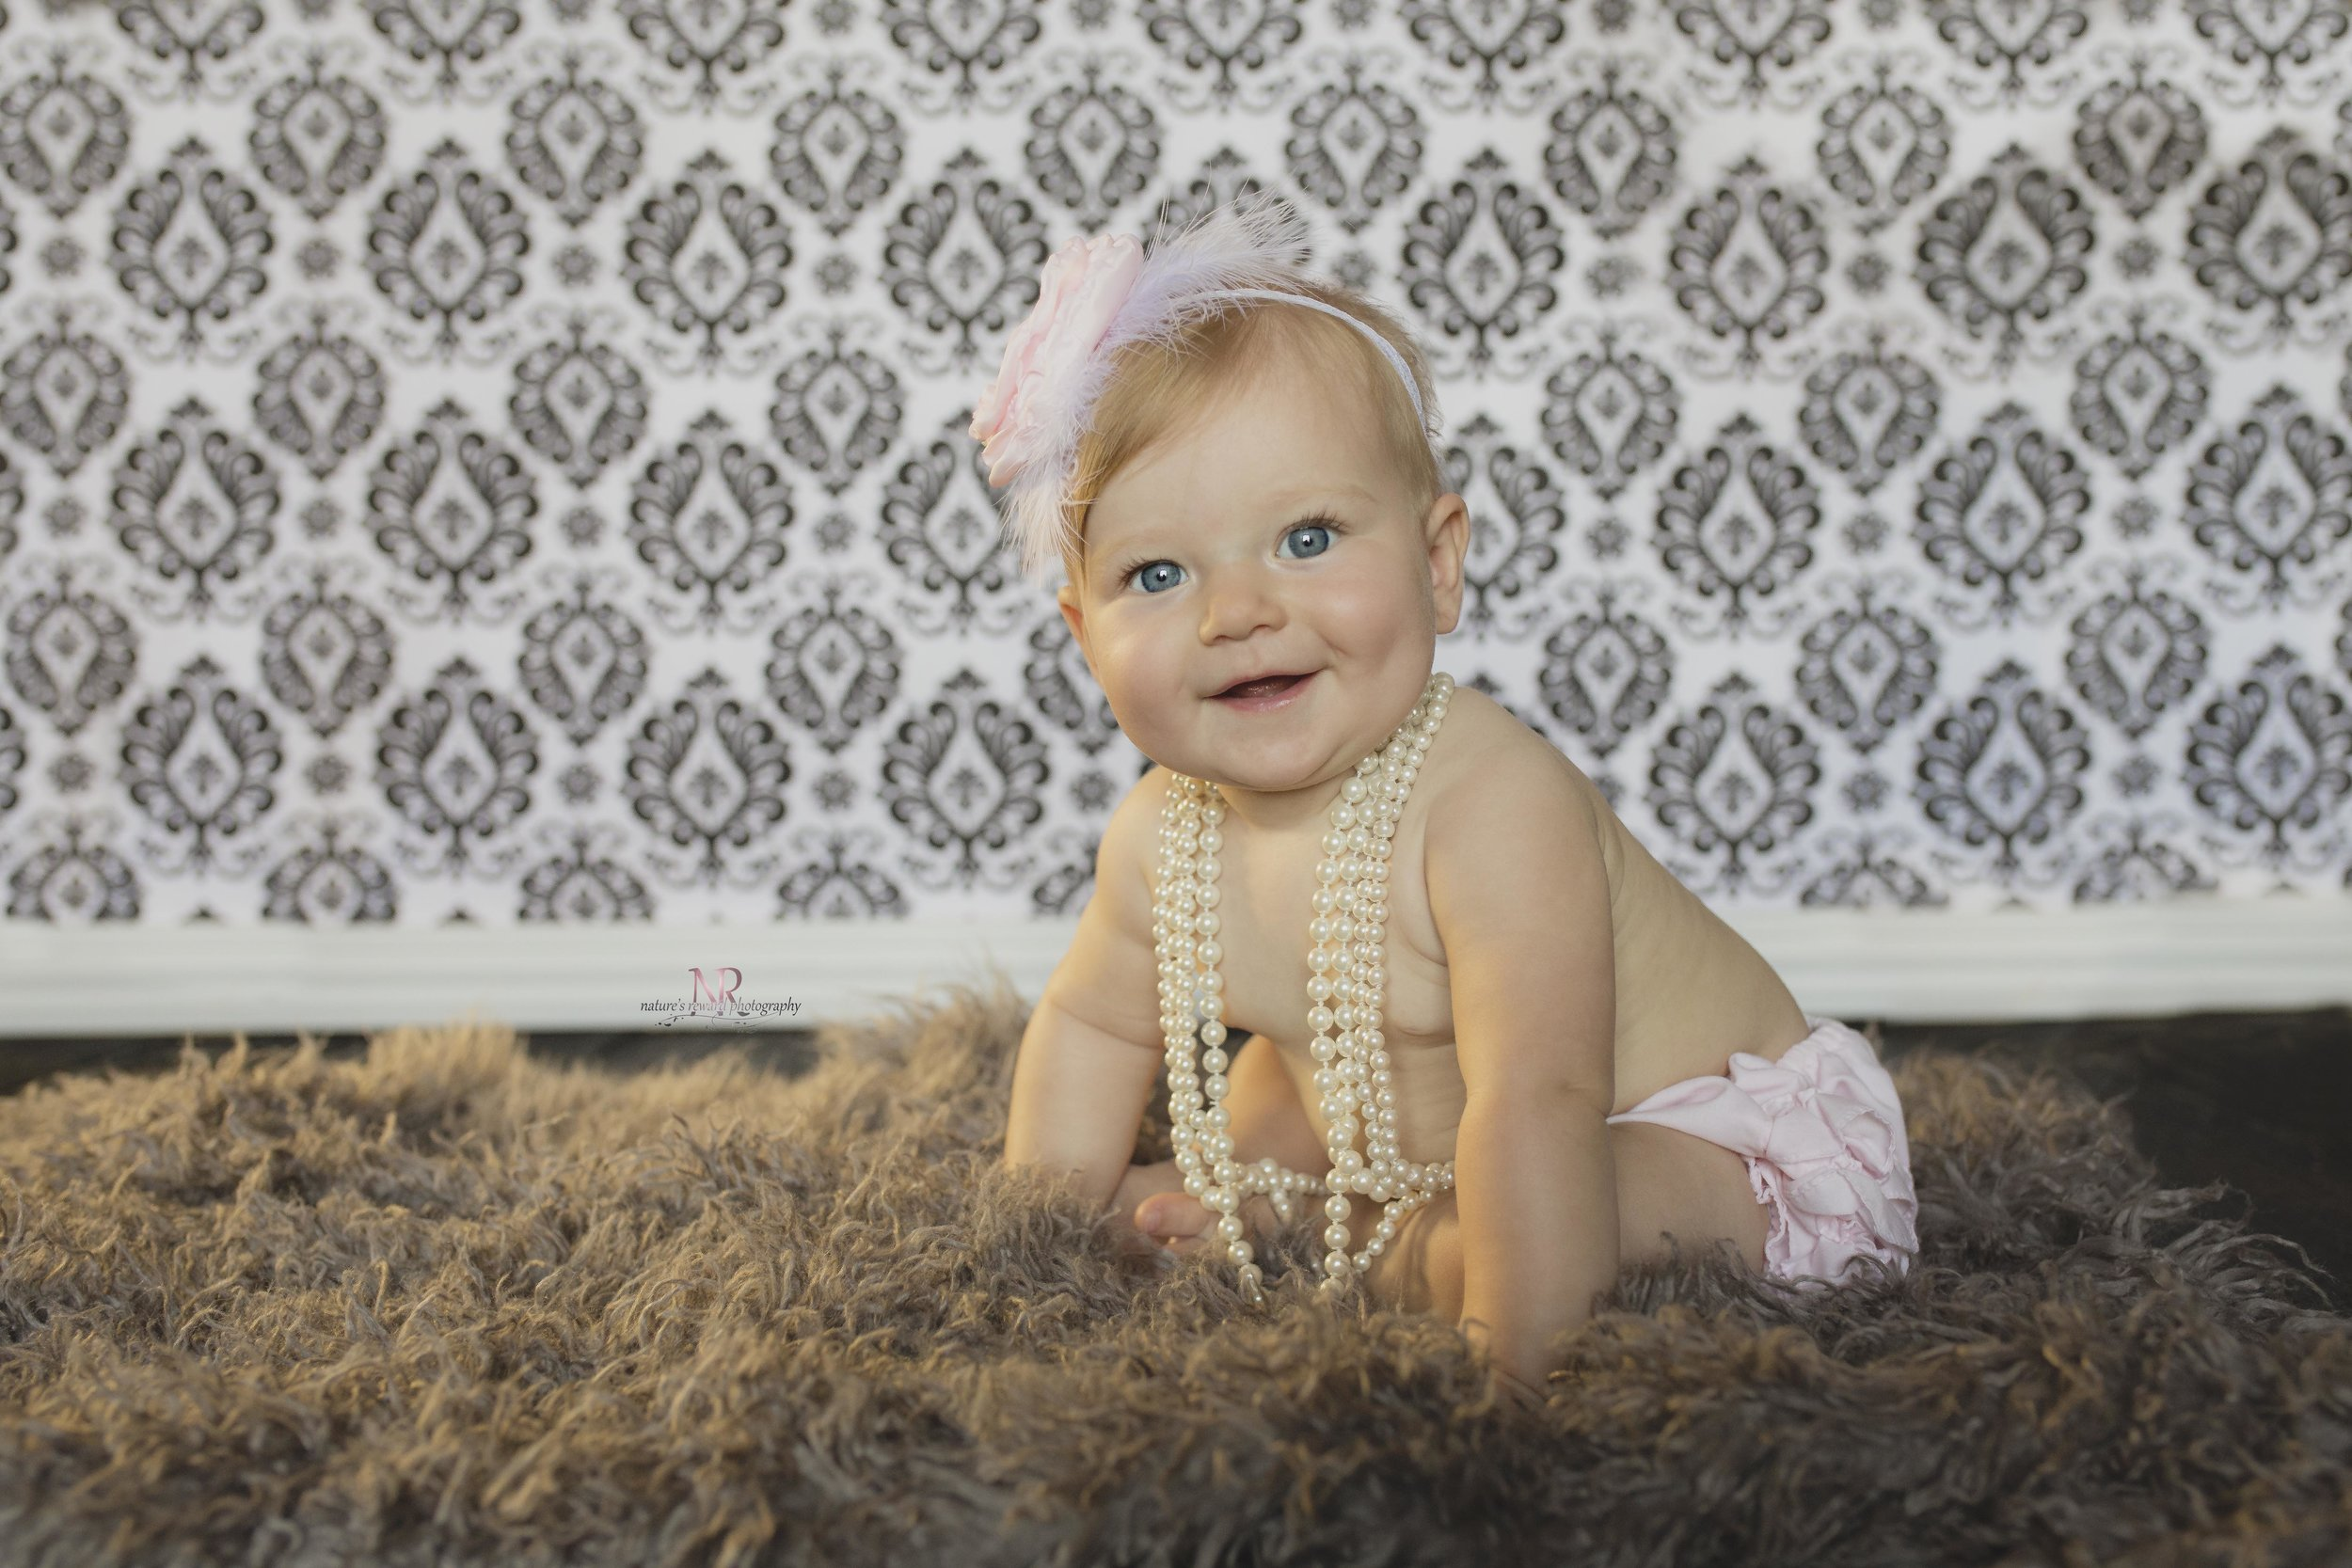 Look at those big bright eyes! Not to mention that smile! Mom requested damask backdrop to match what she has o f her other children.